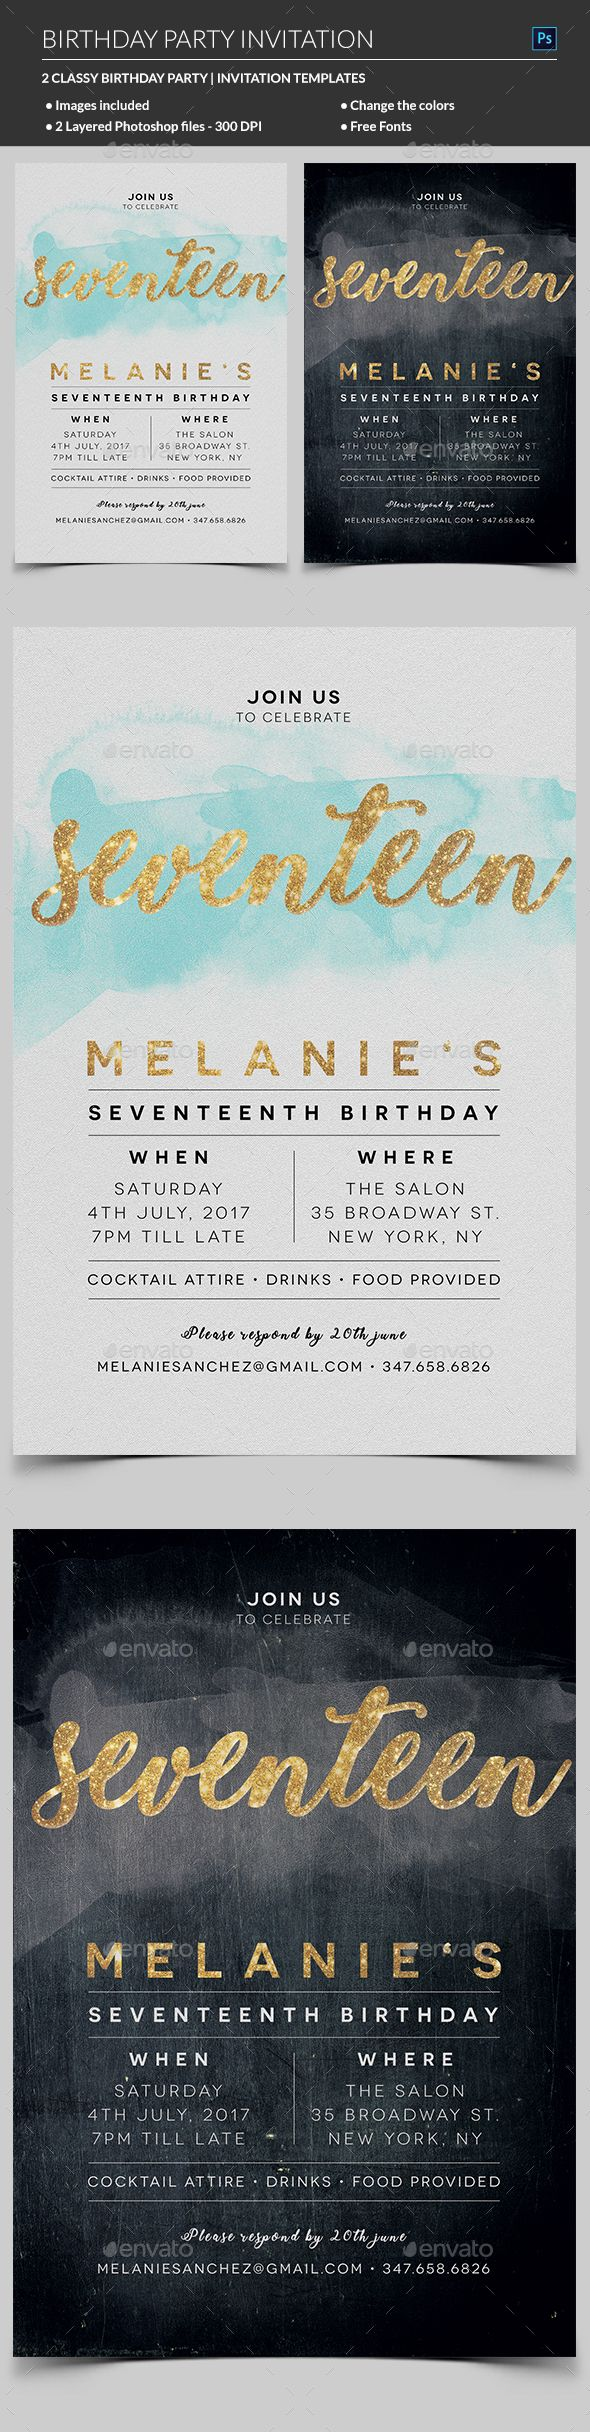 Elegant Birthday Invitation Photoshop Elegant And Birthdays - Birthday invitation photoshop template